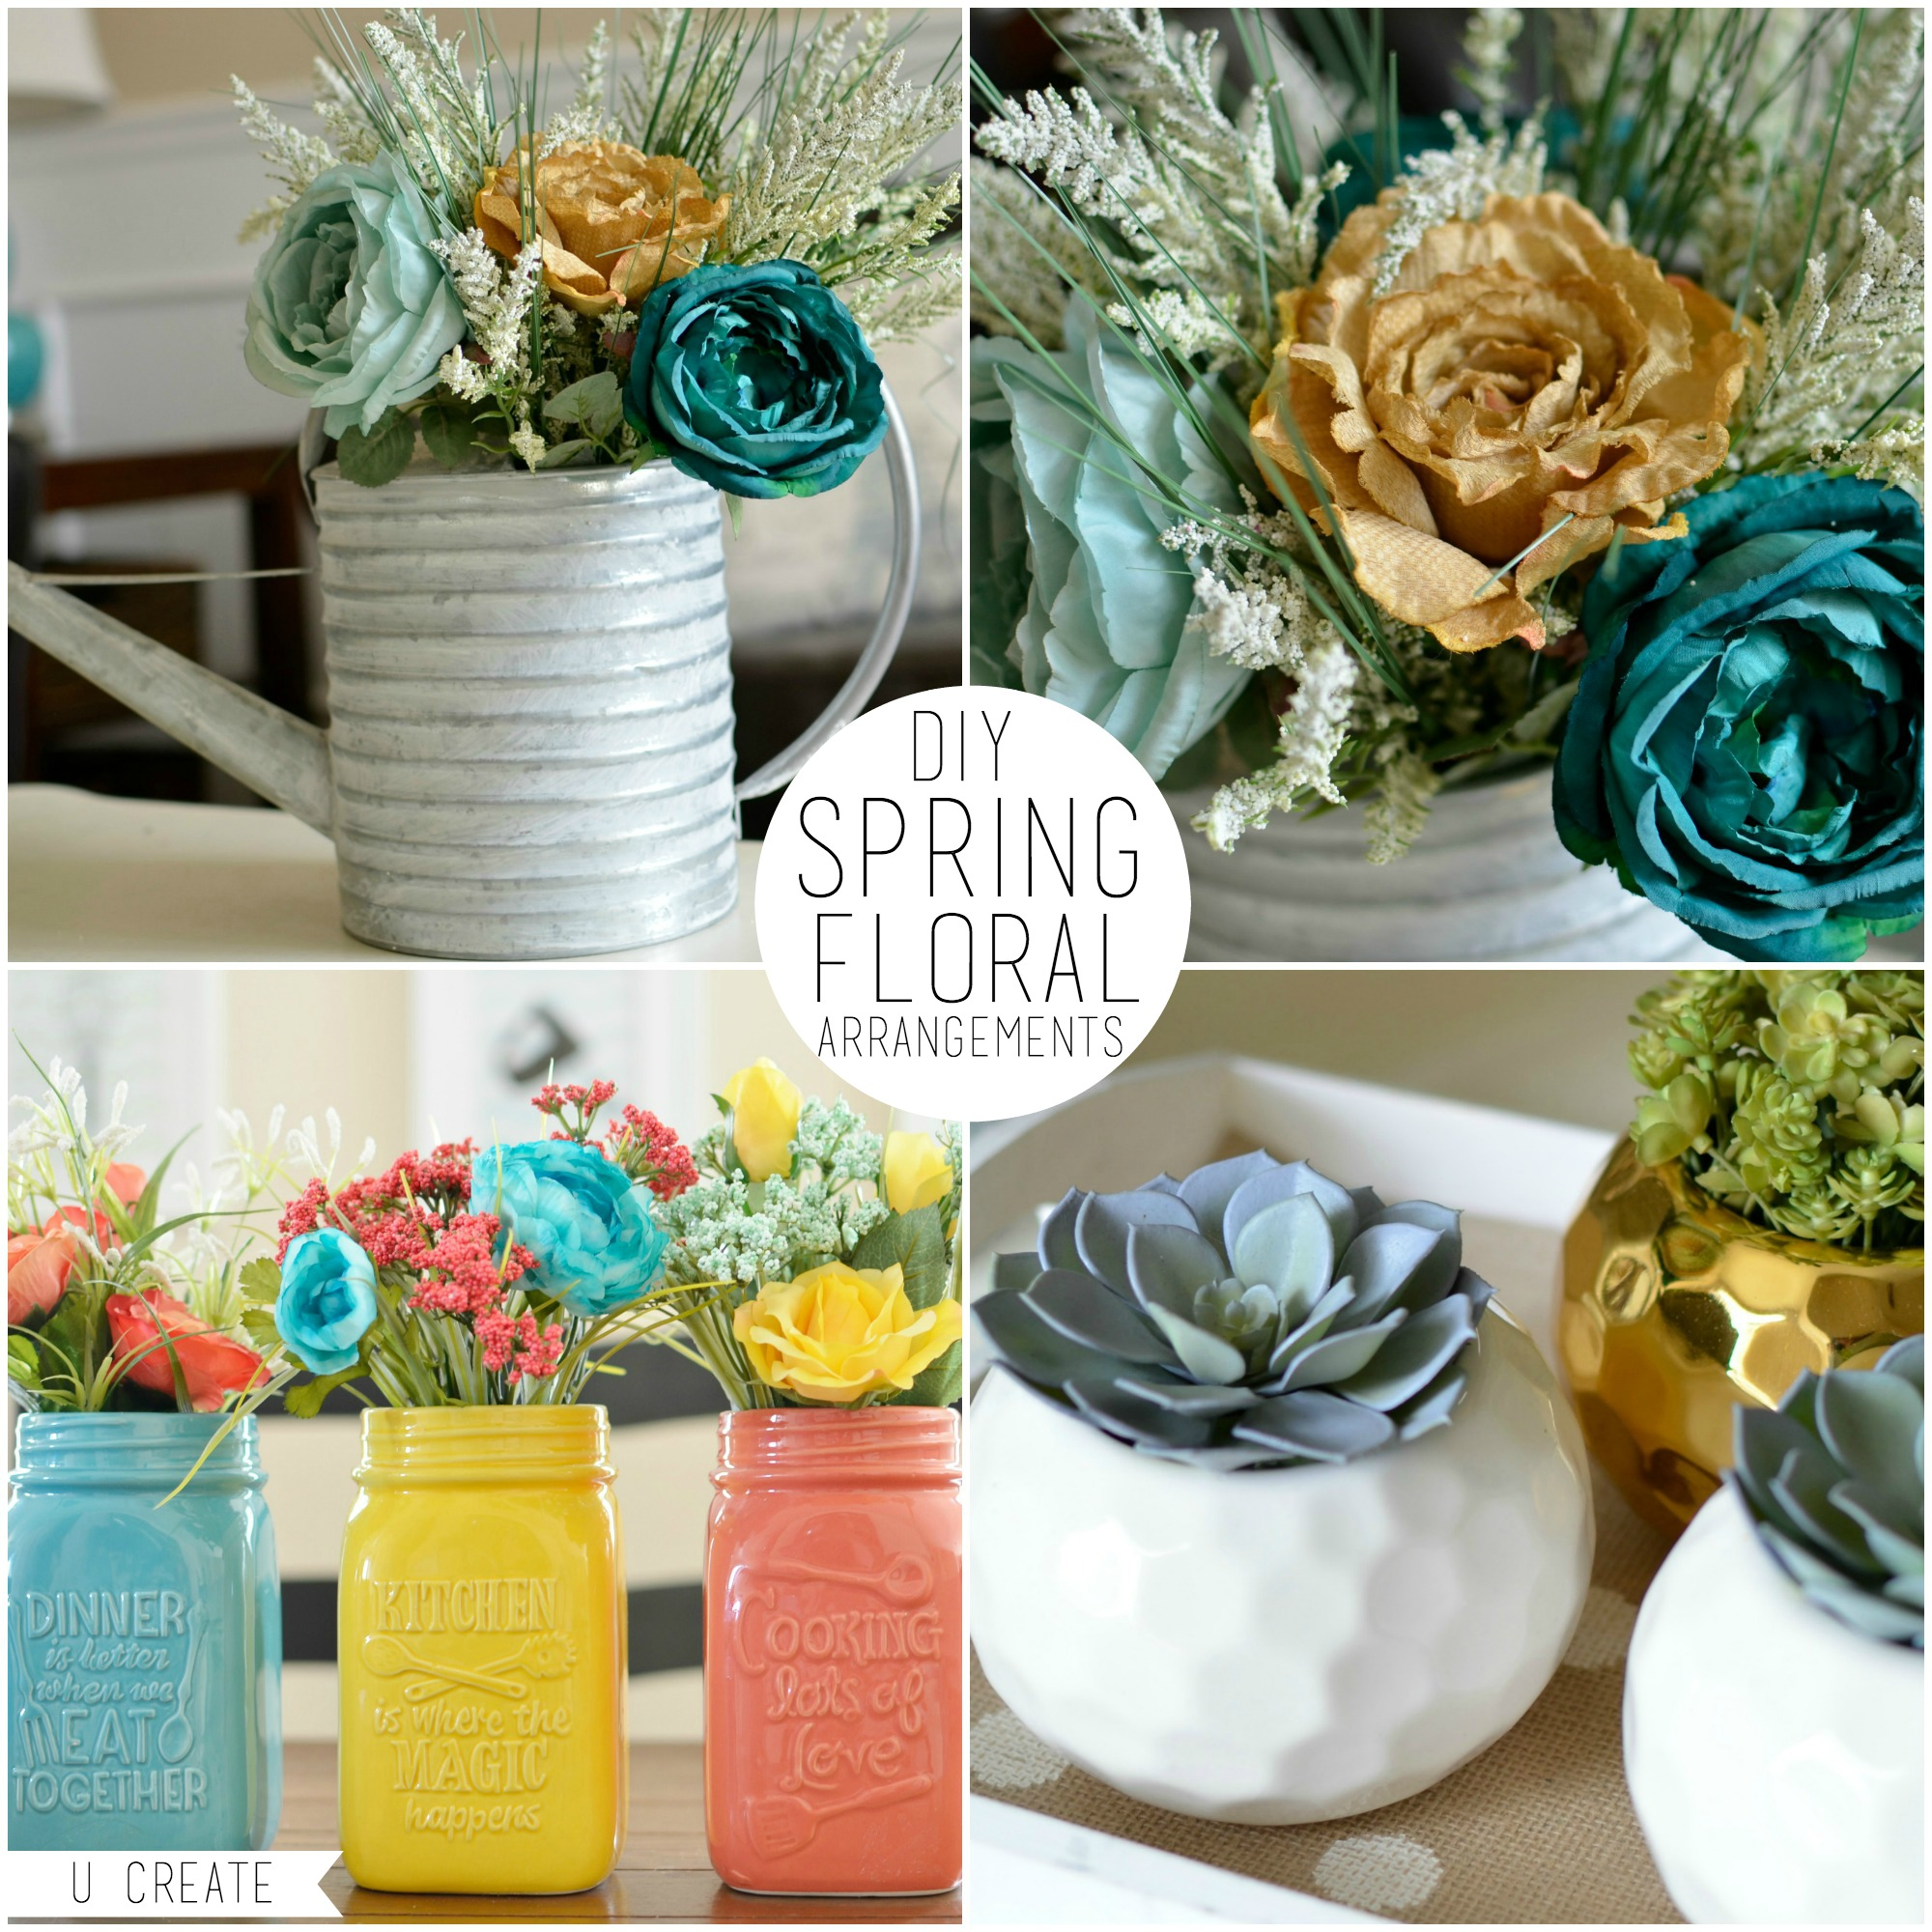 How To Make Floral Arrangements diy spring floral arrangements - u create